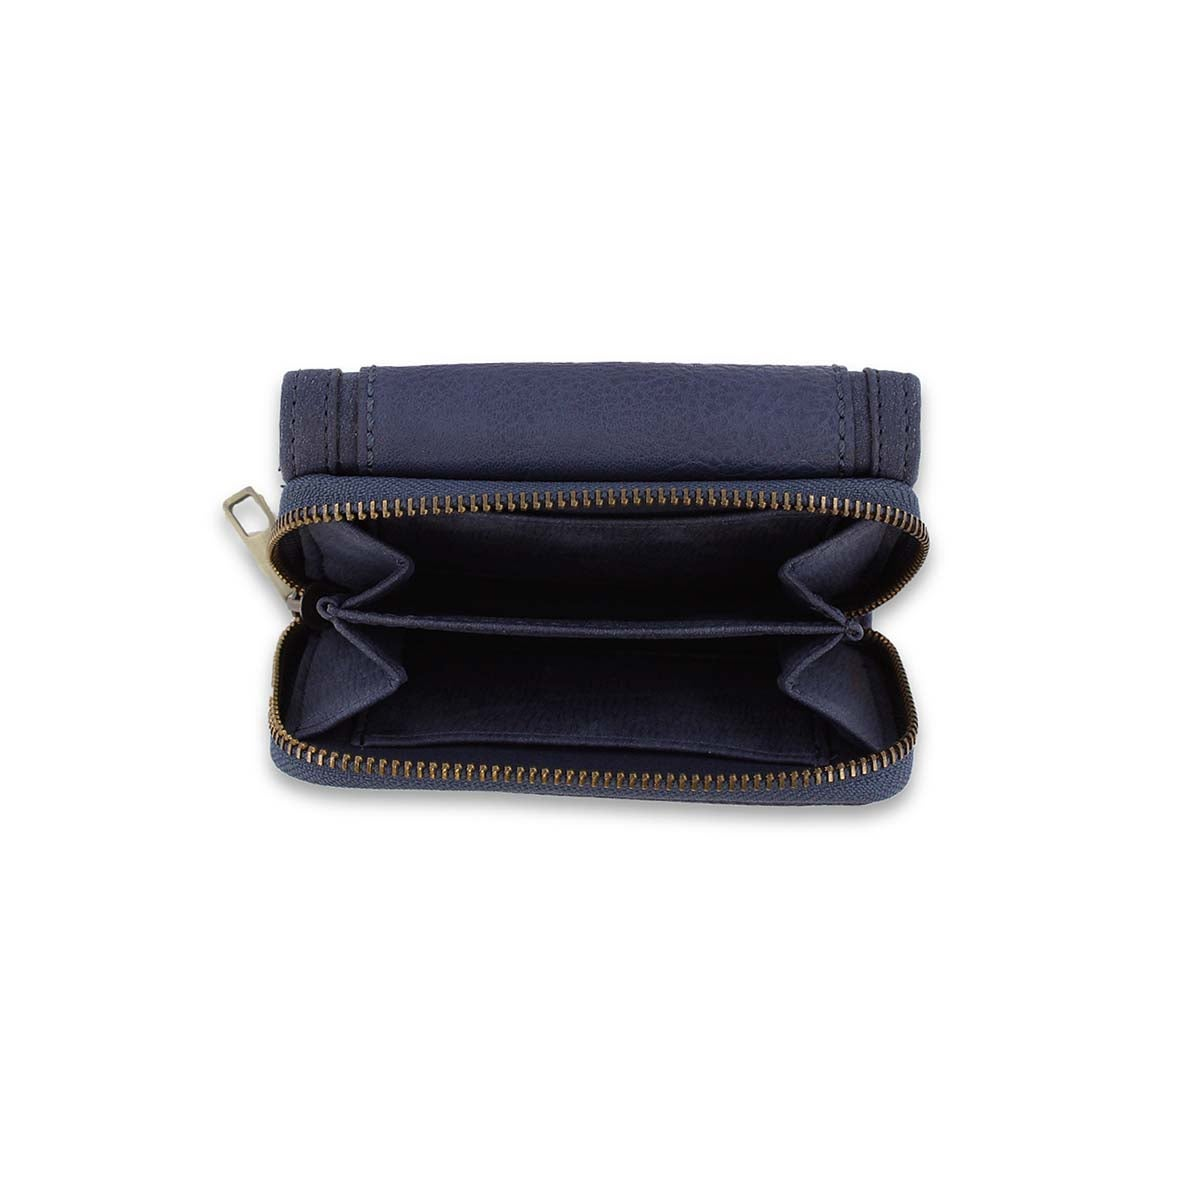 Lds Cliff navy trifold wallet